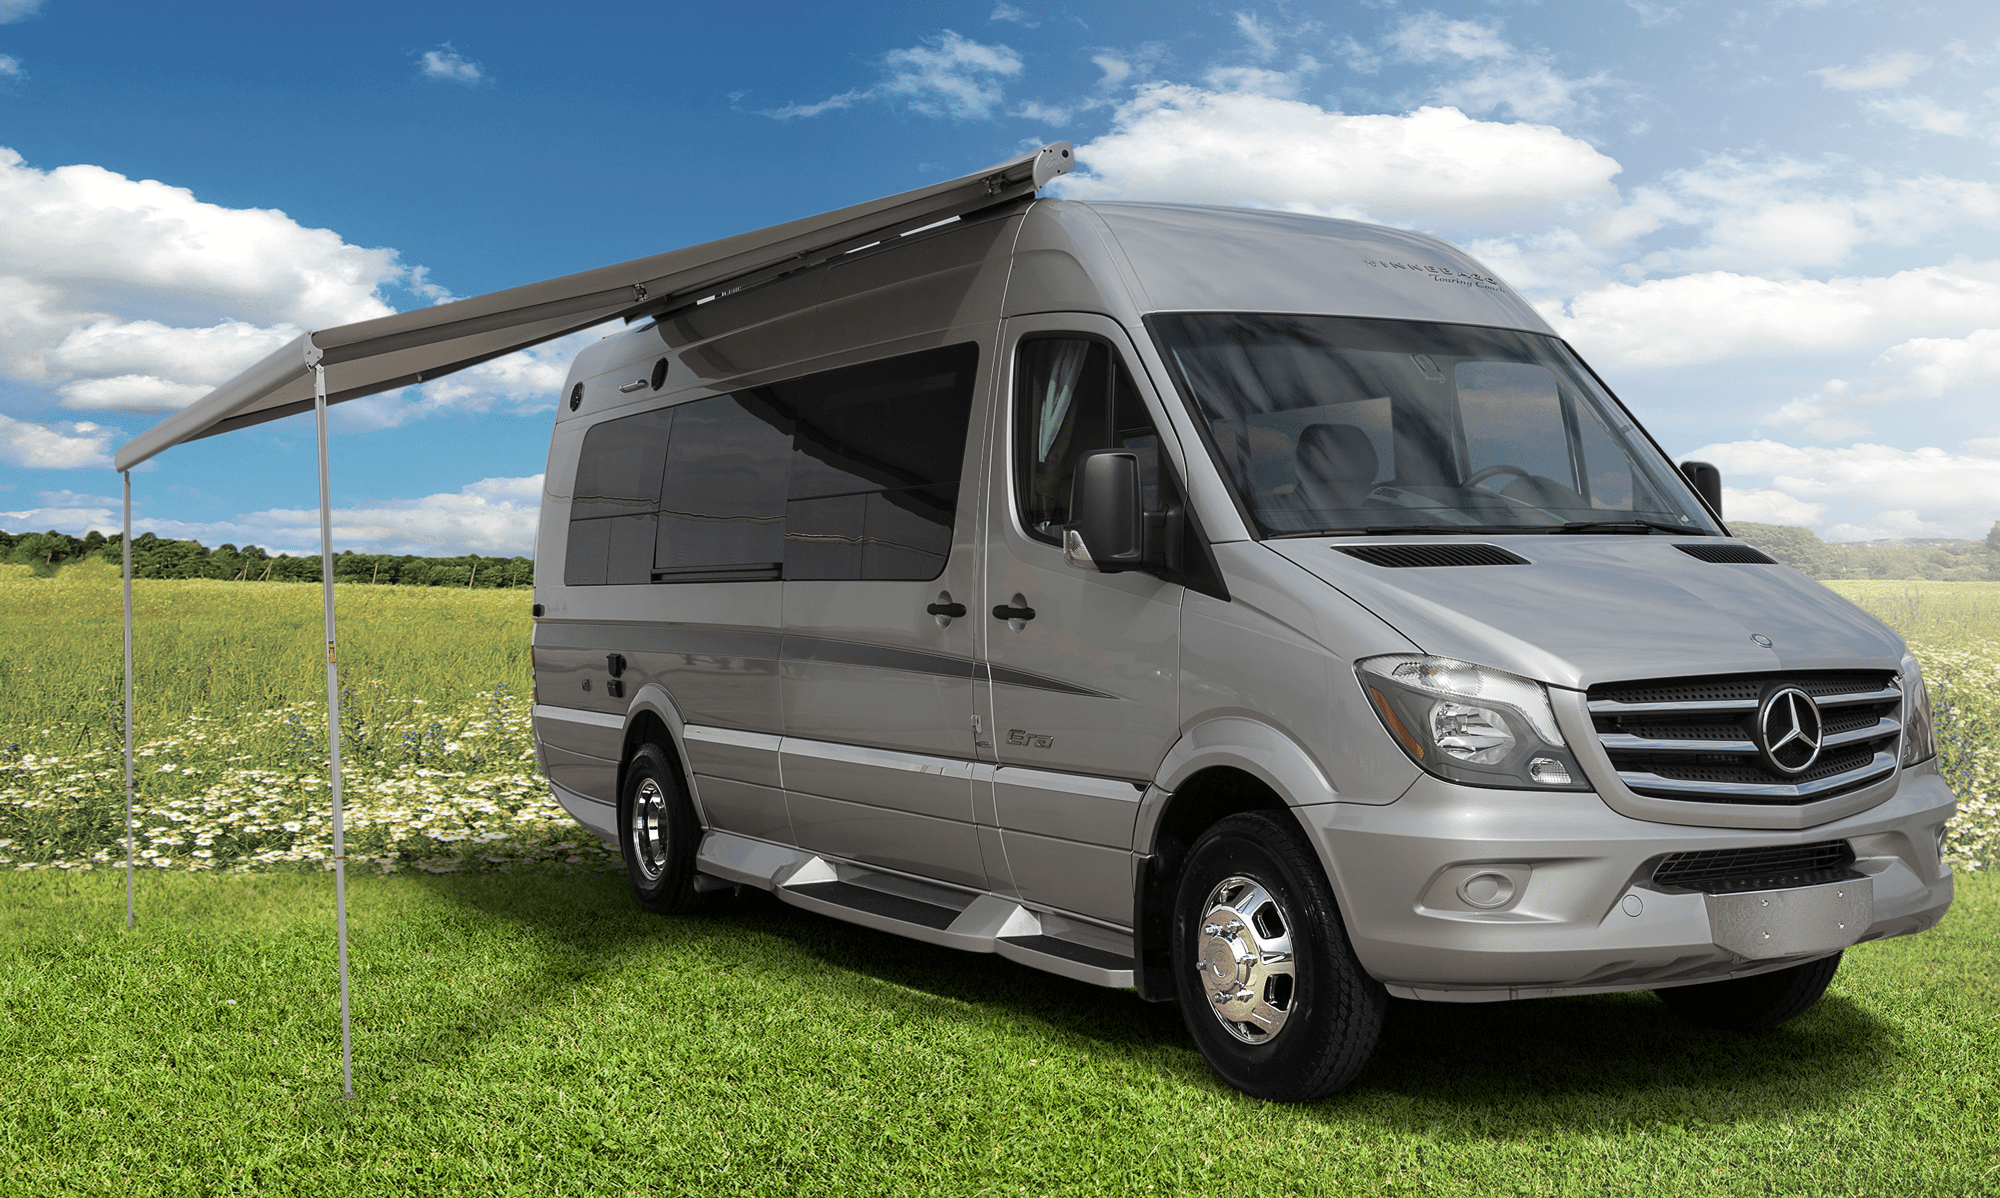 Mercedes Benz Rv >> Winnebago Era 70X, 4x4: Fuel Efficient Class B Motorhomes